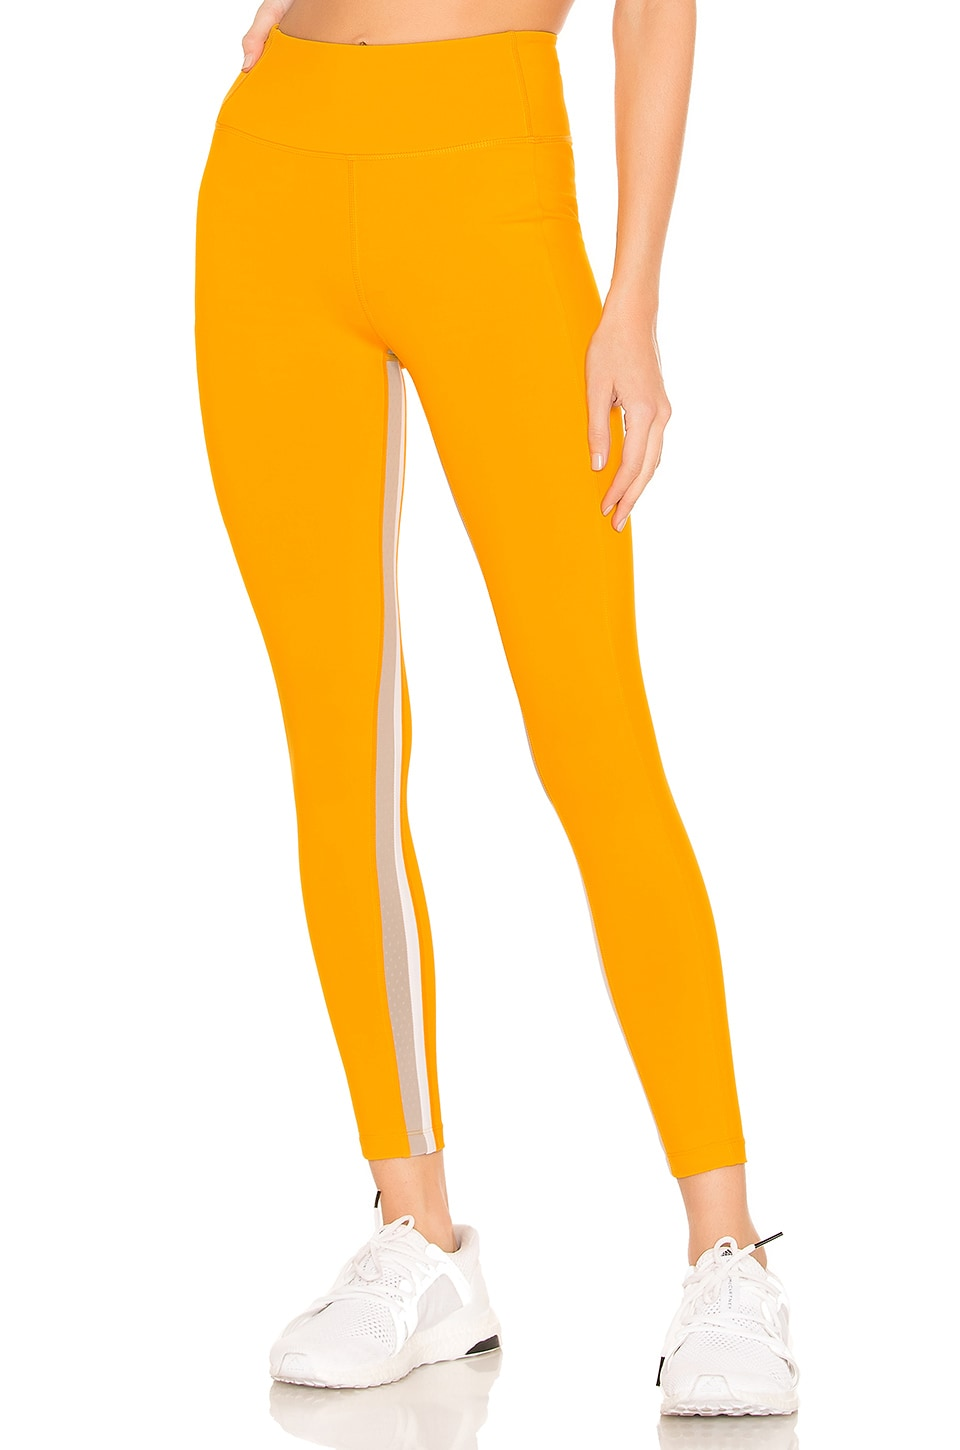 Splits59 Aerial 7/8 Tight in Bright Orange, Stone & Off White